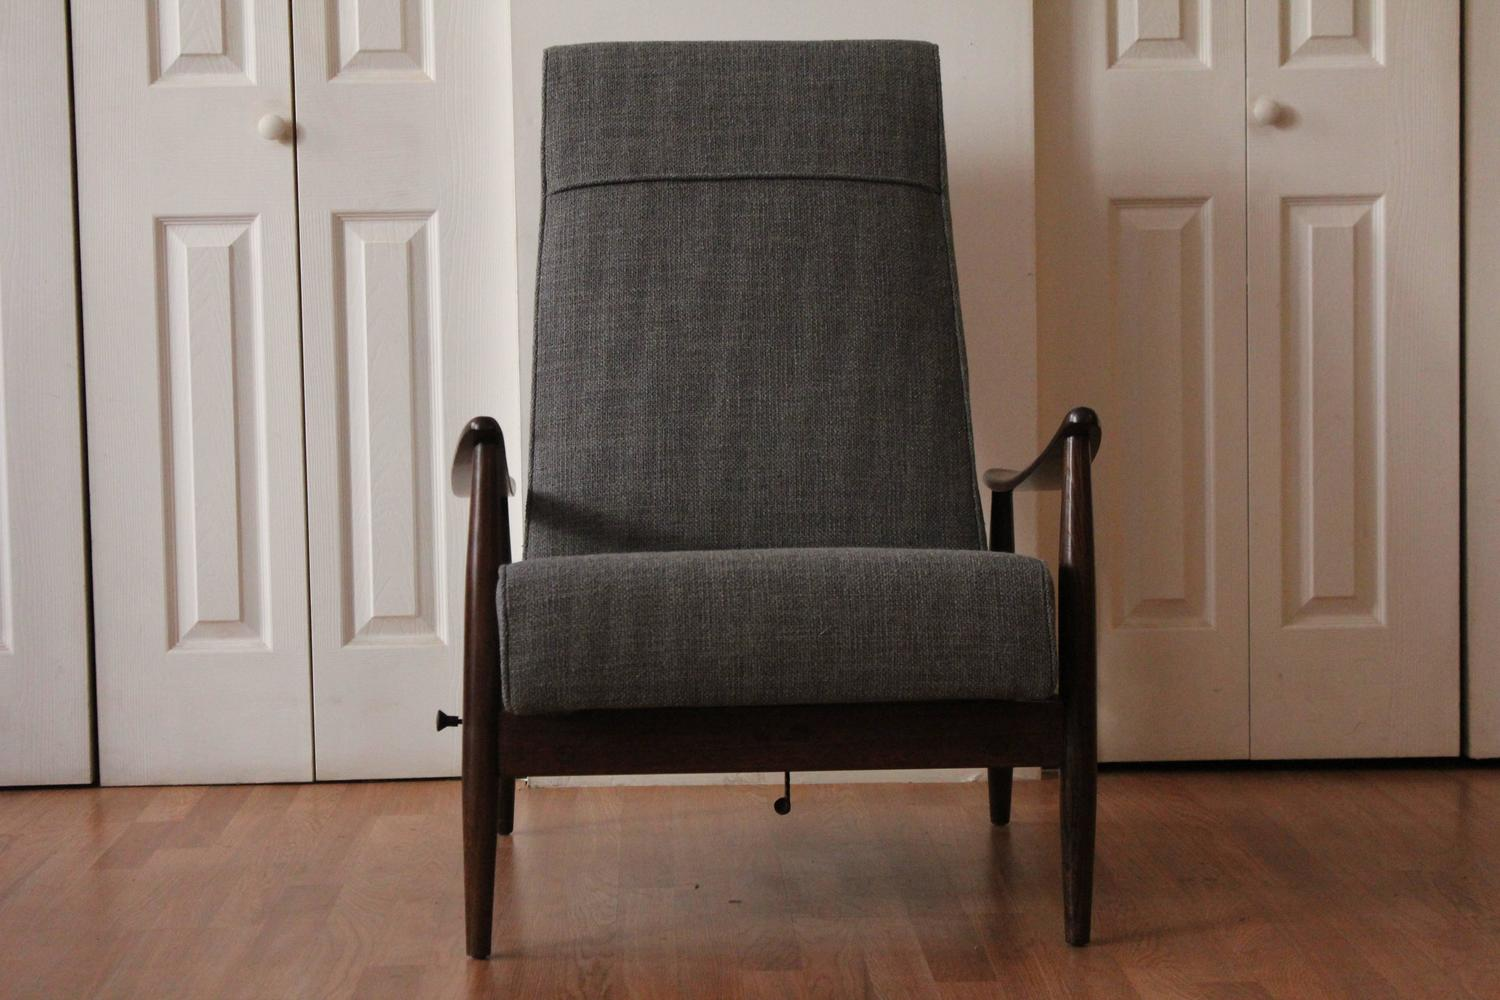 correct posture lounge chair white and wood chairs milo baughman 5 position recliner at 1stdibs